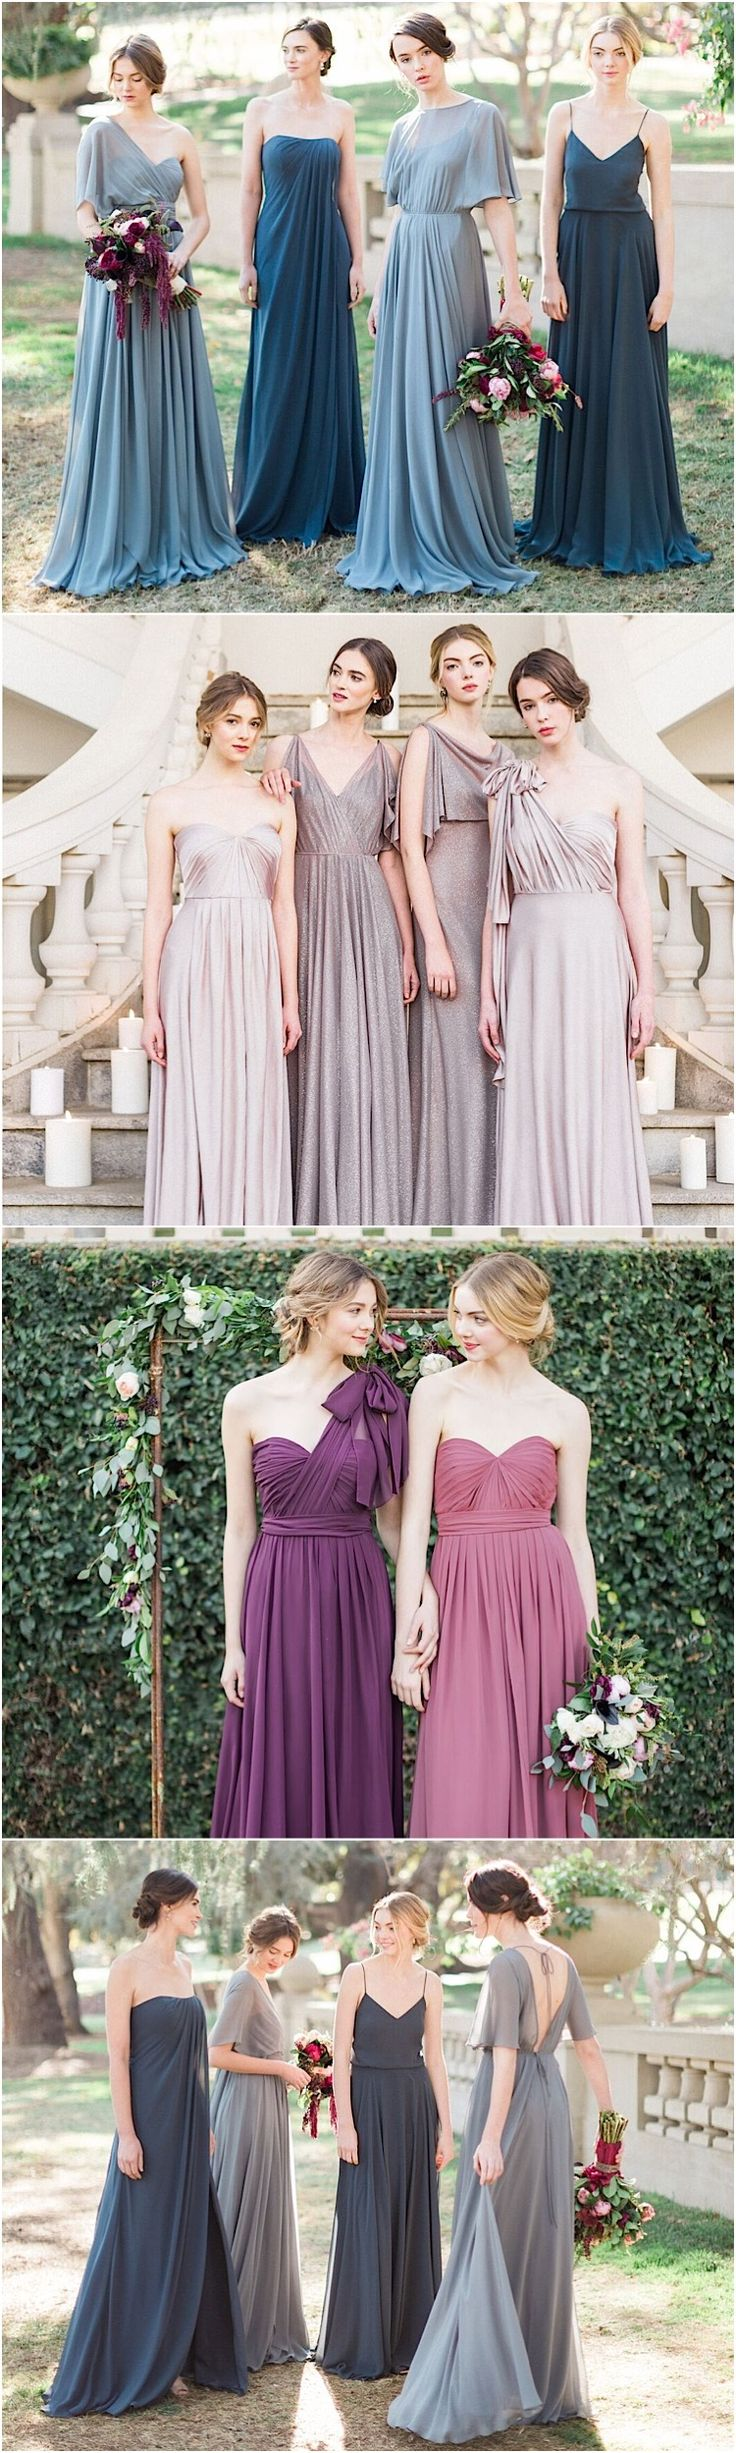 797 best bridesmaids dresses images on pinterest marriage gorgeous bridesmaid dresses by jenny yoo ombrellifo Choice Image